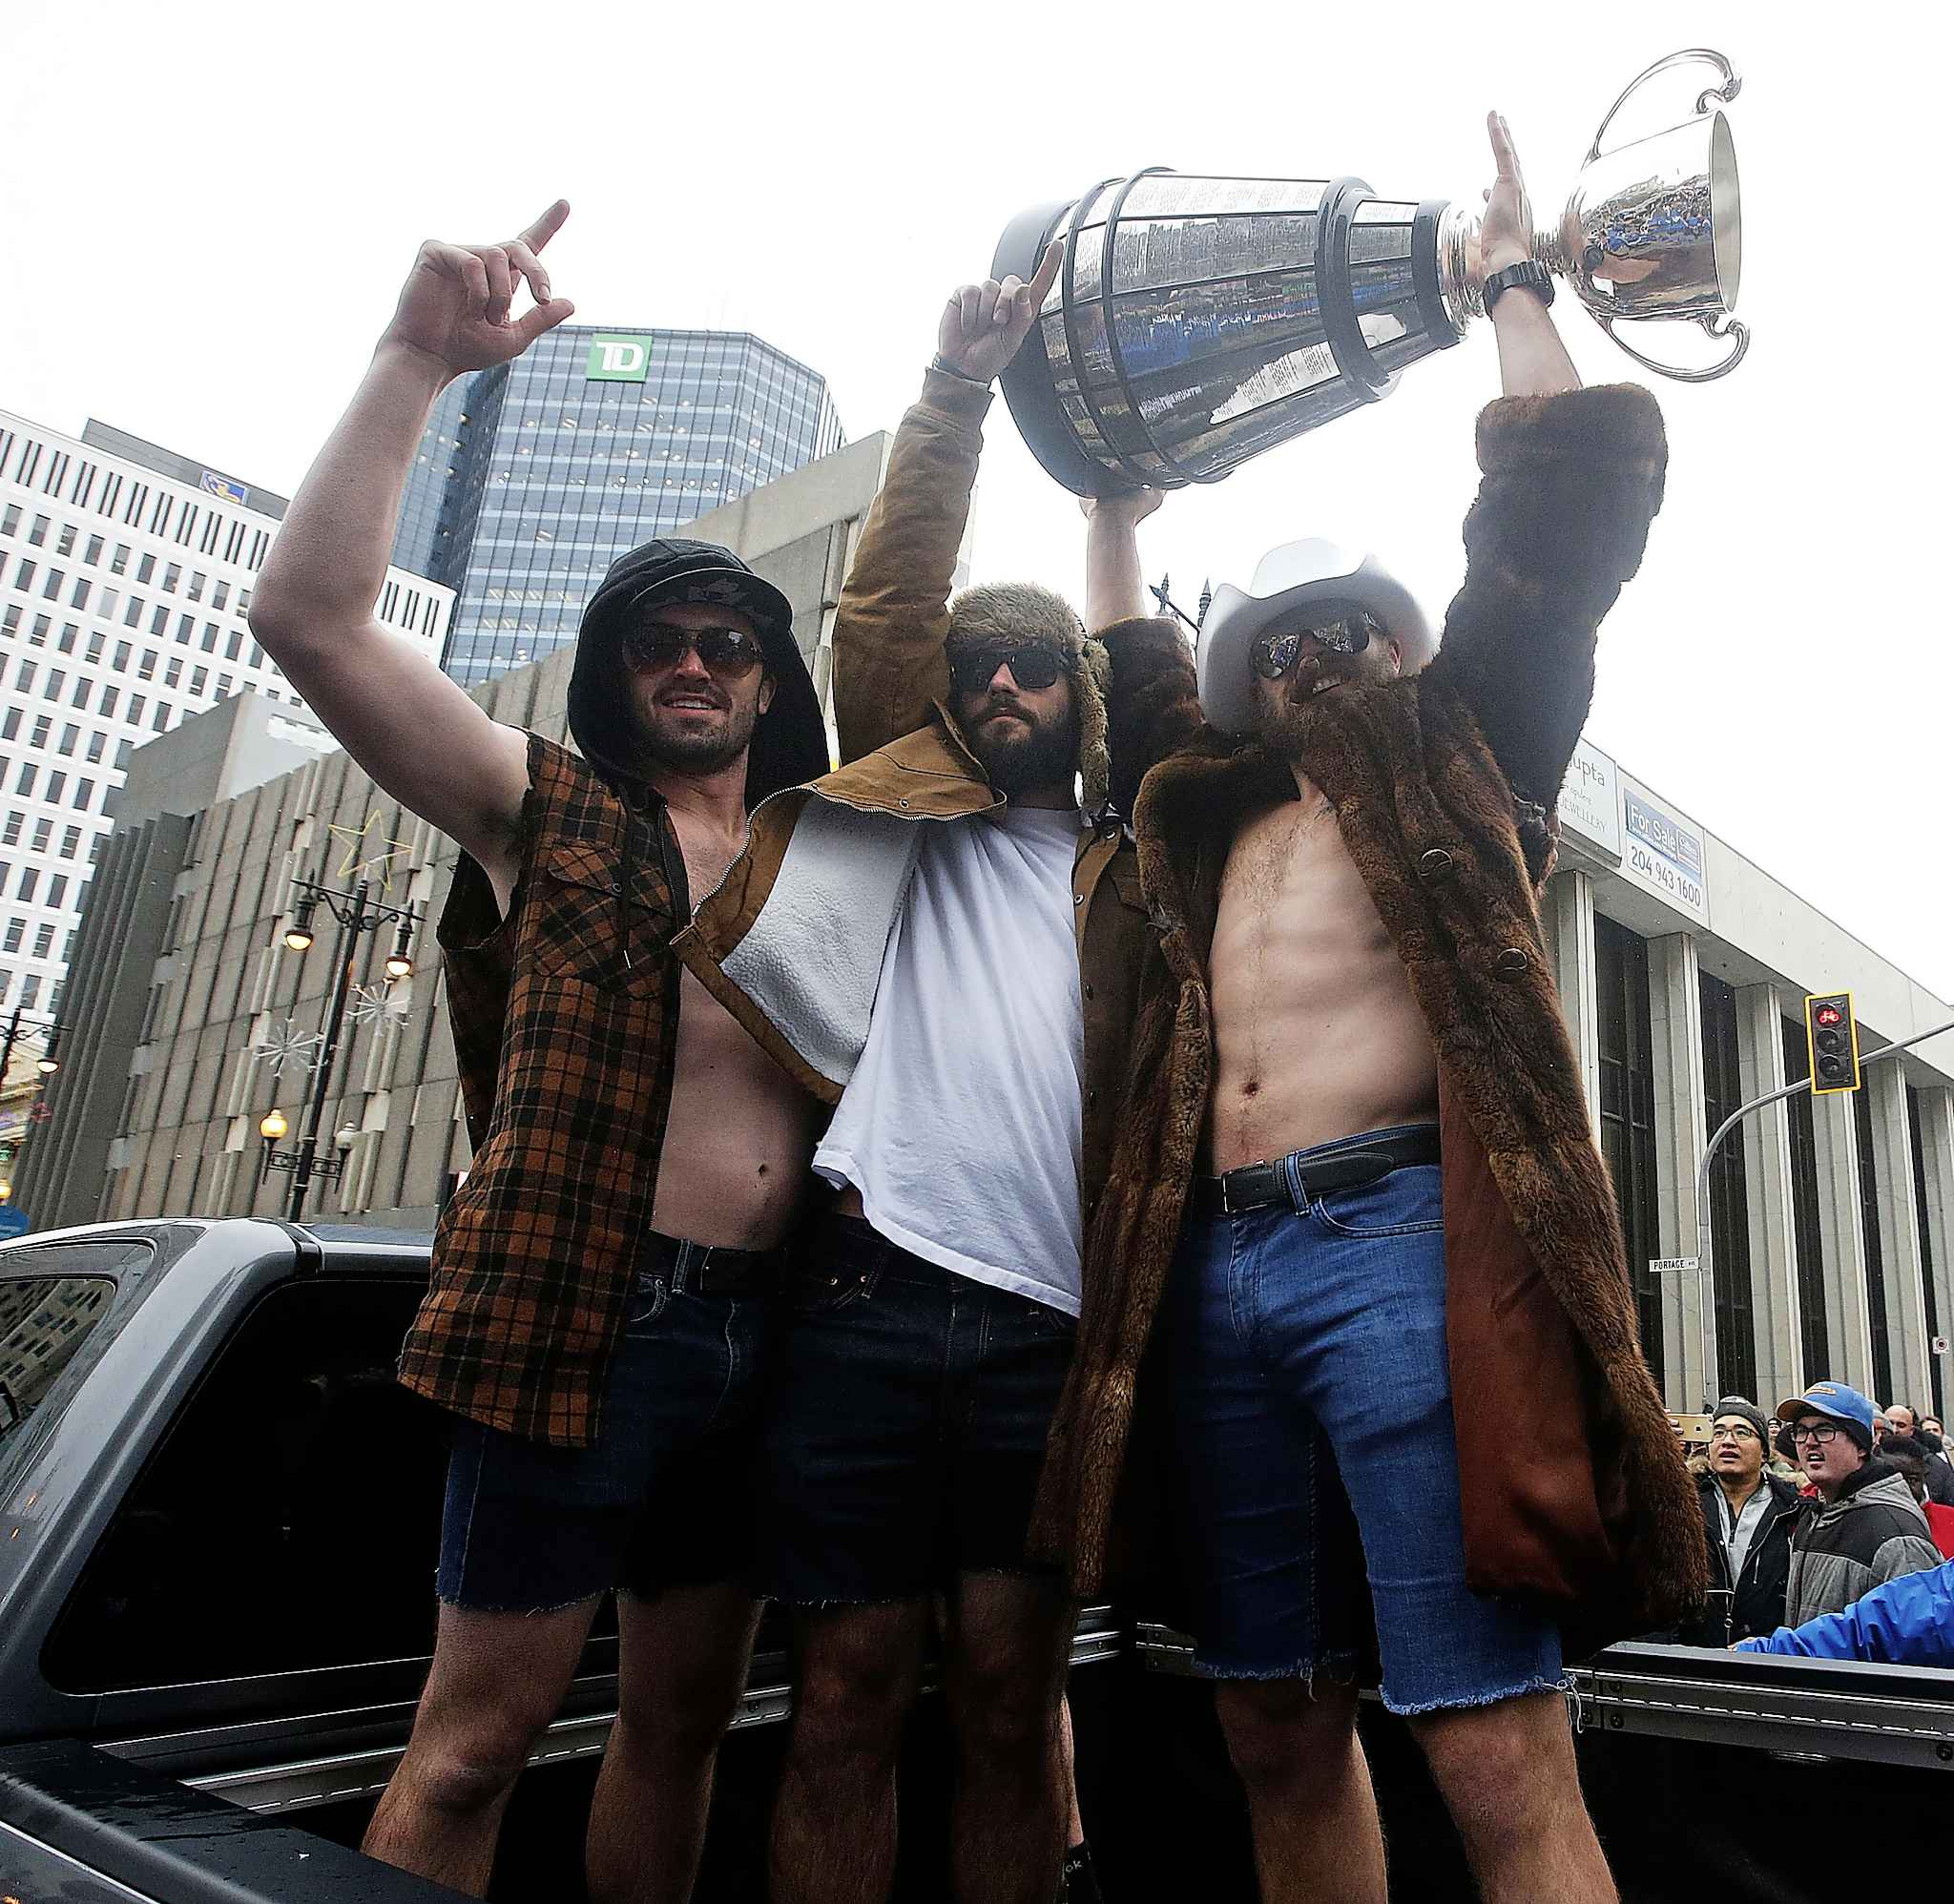 Winnipeg Blue Bombers quarterbacks, from left, Trevor Knight, Sean McGuire and Chris Streveler celebrate their Grey Cup victory with Winnipeggers during the Grey Cup parade in downtown Winnipeg, Tuesday.